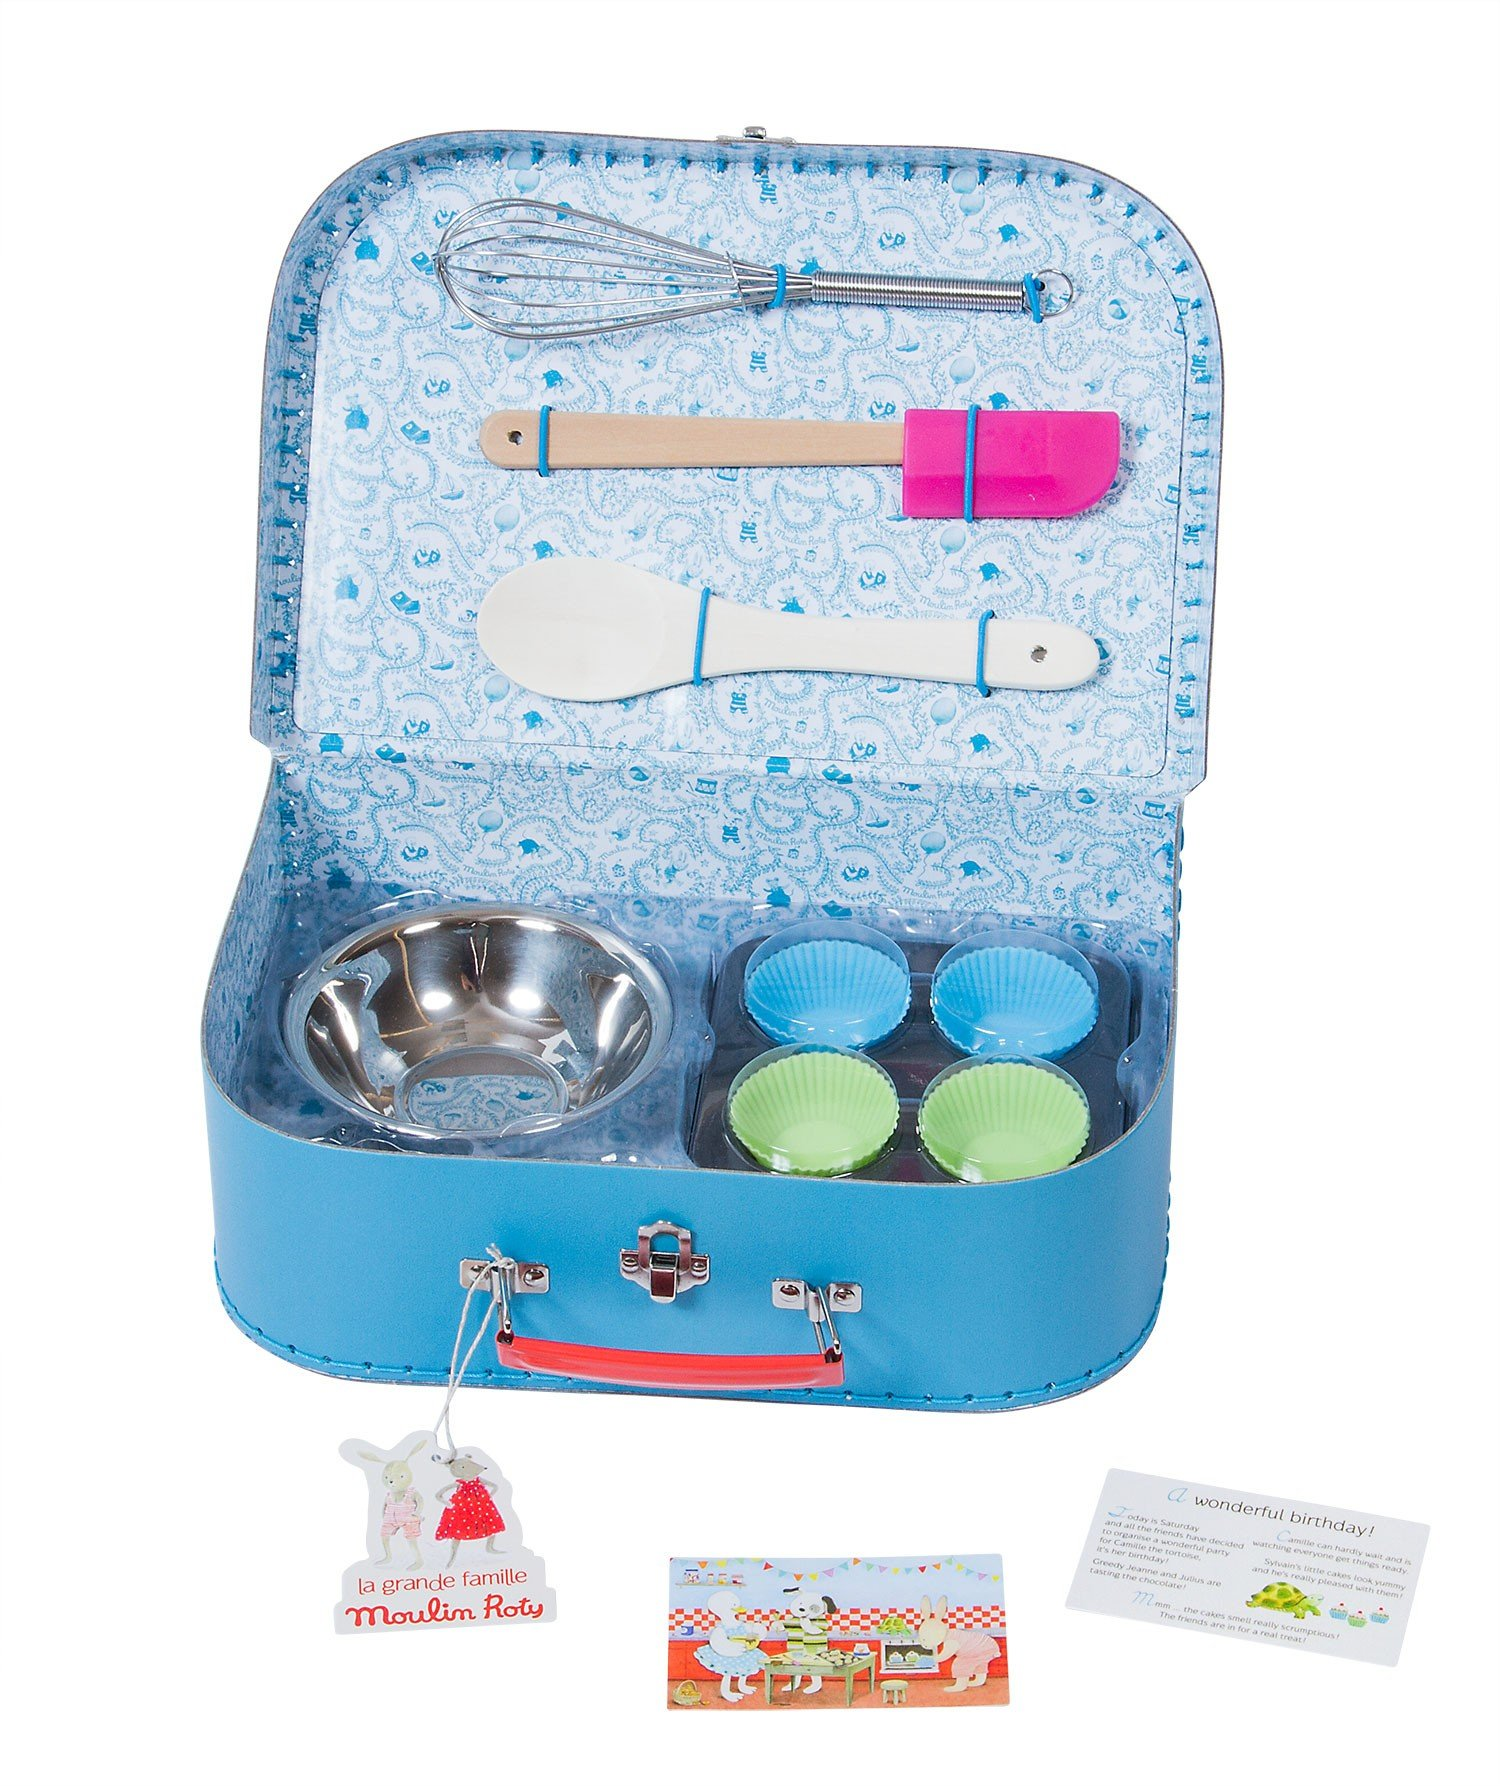 Moulin Roty Je Fais Des Gateaux ''I Am Baking Pastries!'' Child Sized Cooking Tools Toy Set in Carry Suitcase